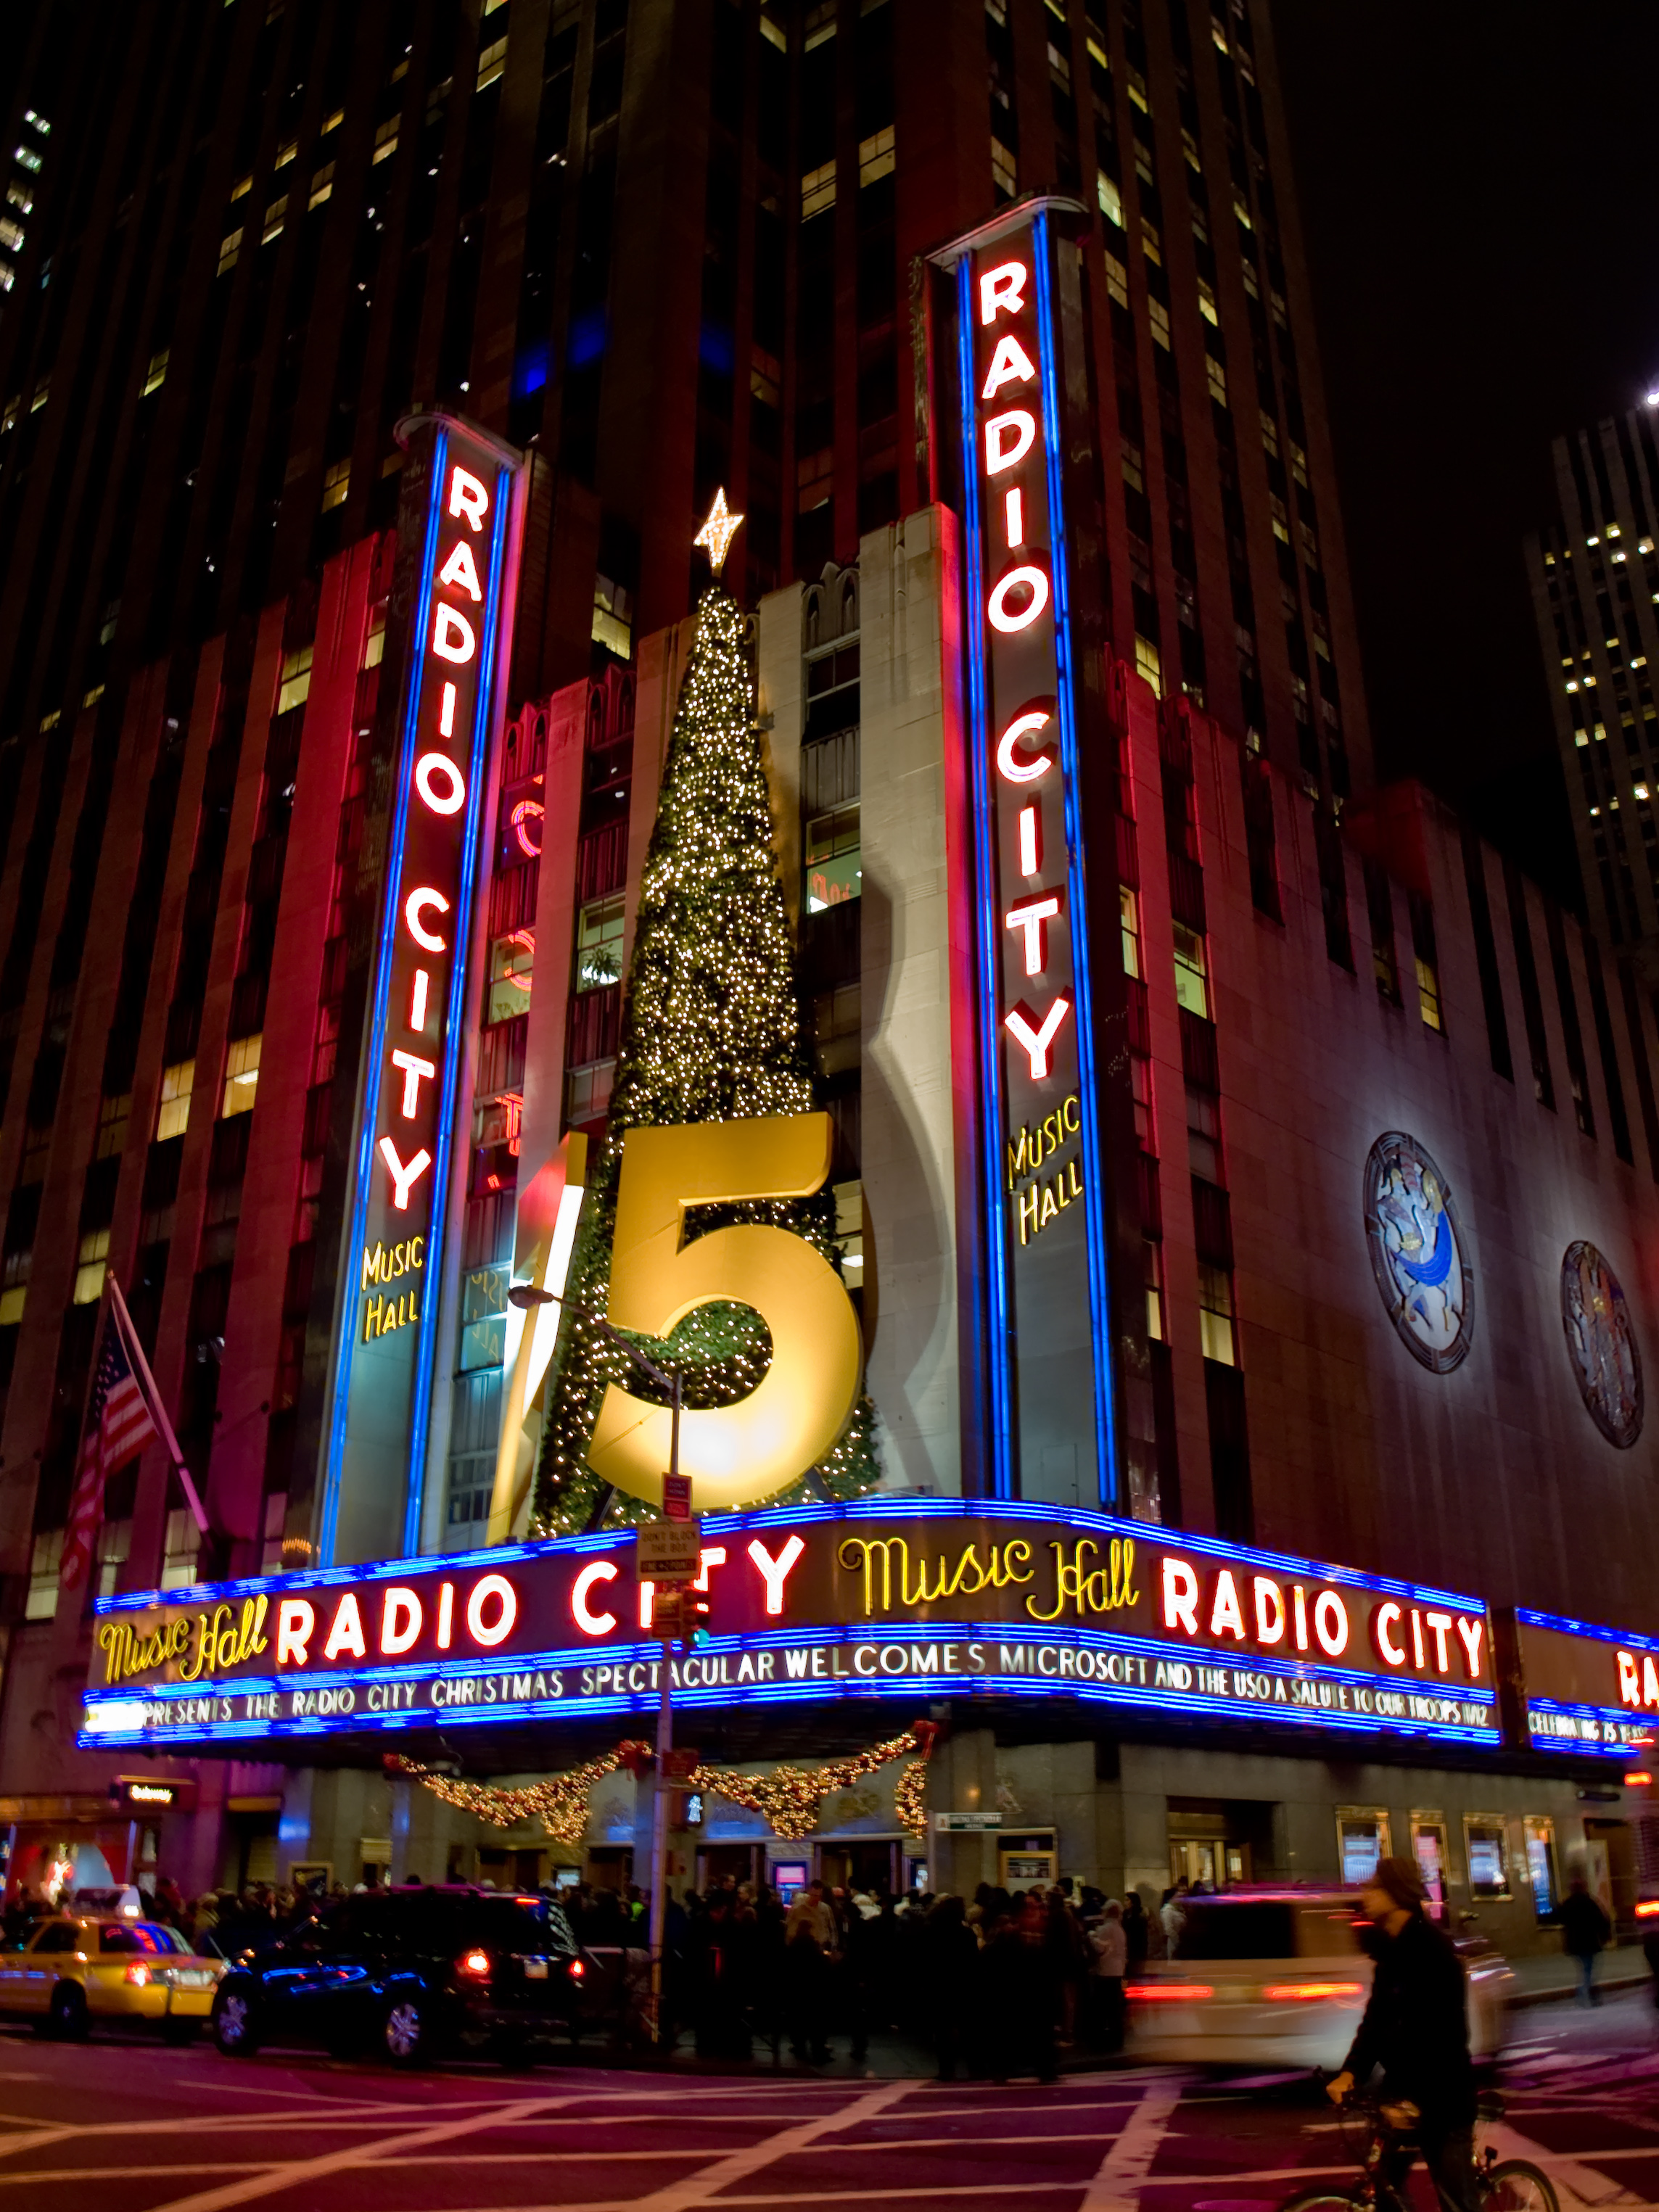 File:Radio City Music Hall 2229954271 675a3a4551.jpg - Wikimedia ...